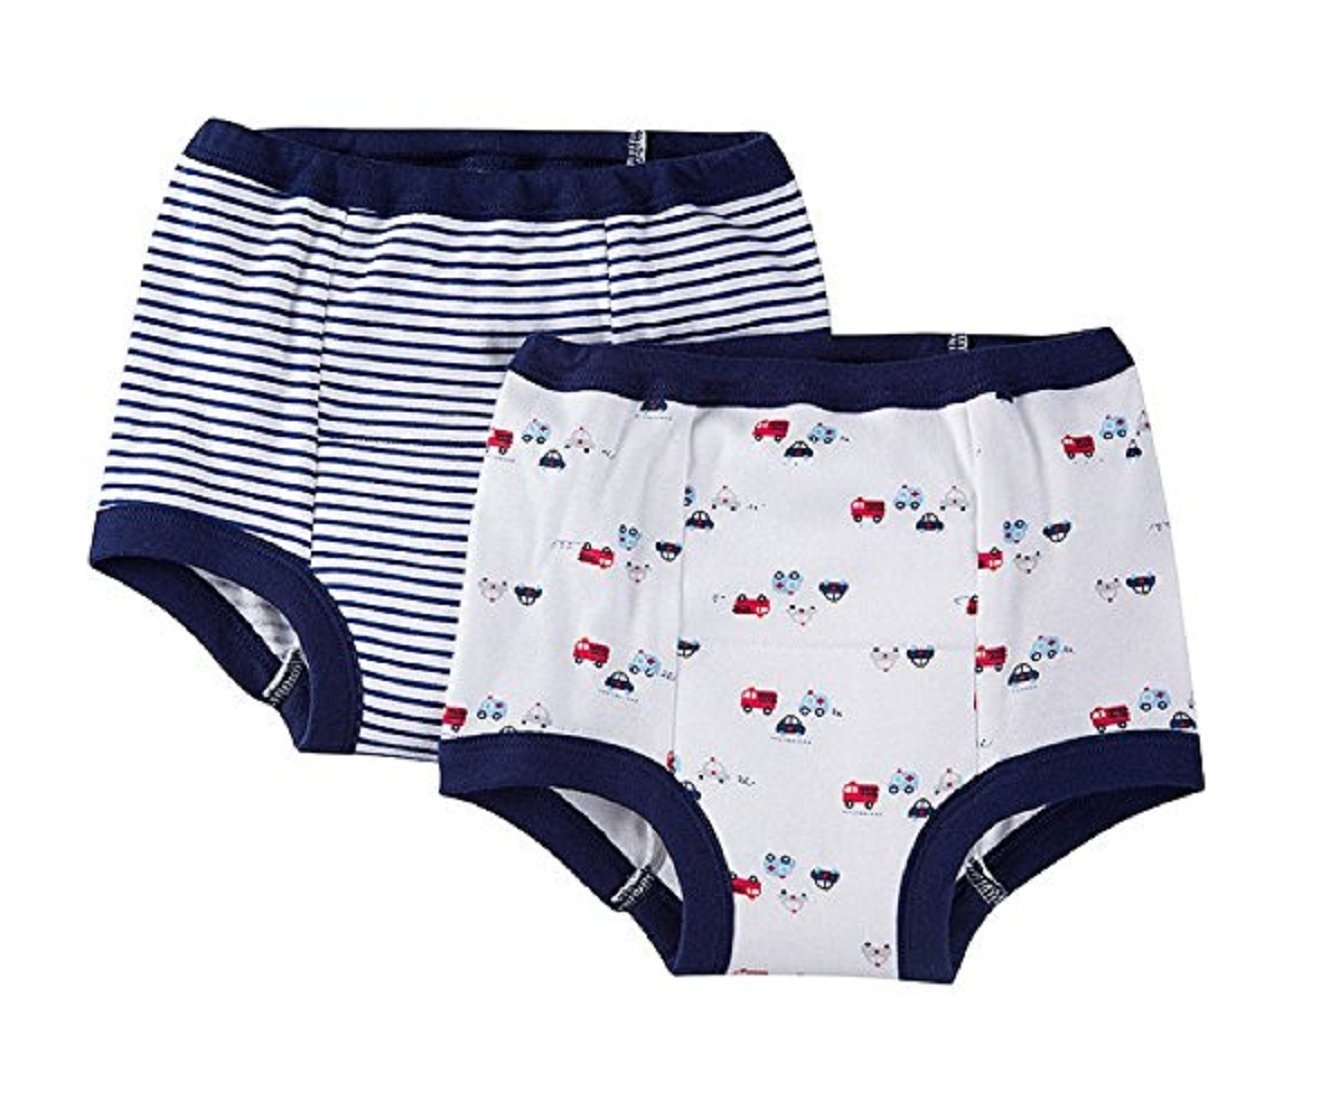 Gerber Baby and Toddler Boys Cotton Training Pants Firetrucks Blue 2-Pack (3T)